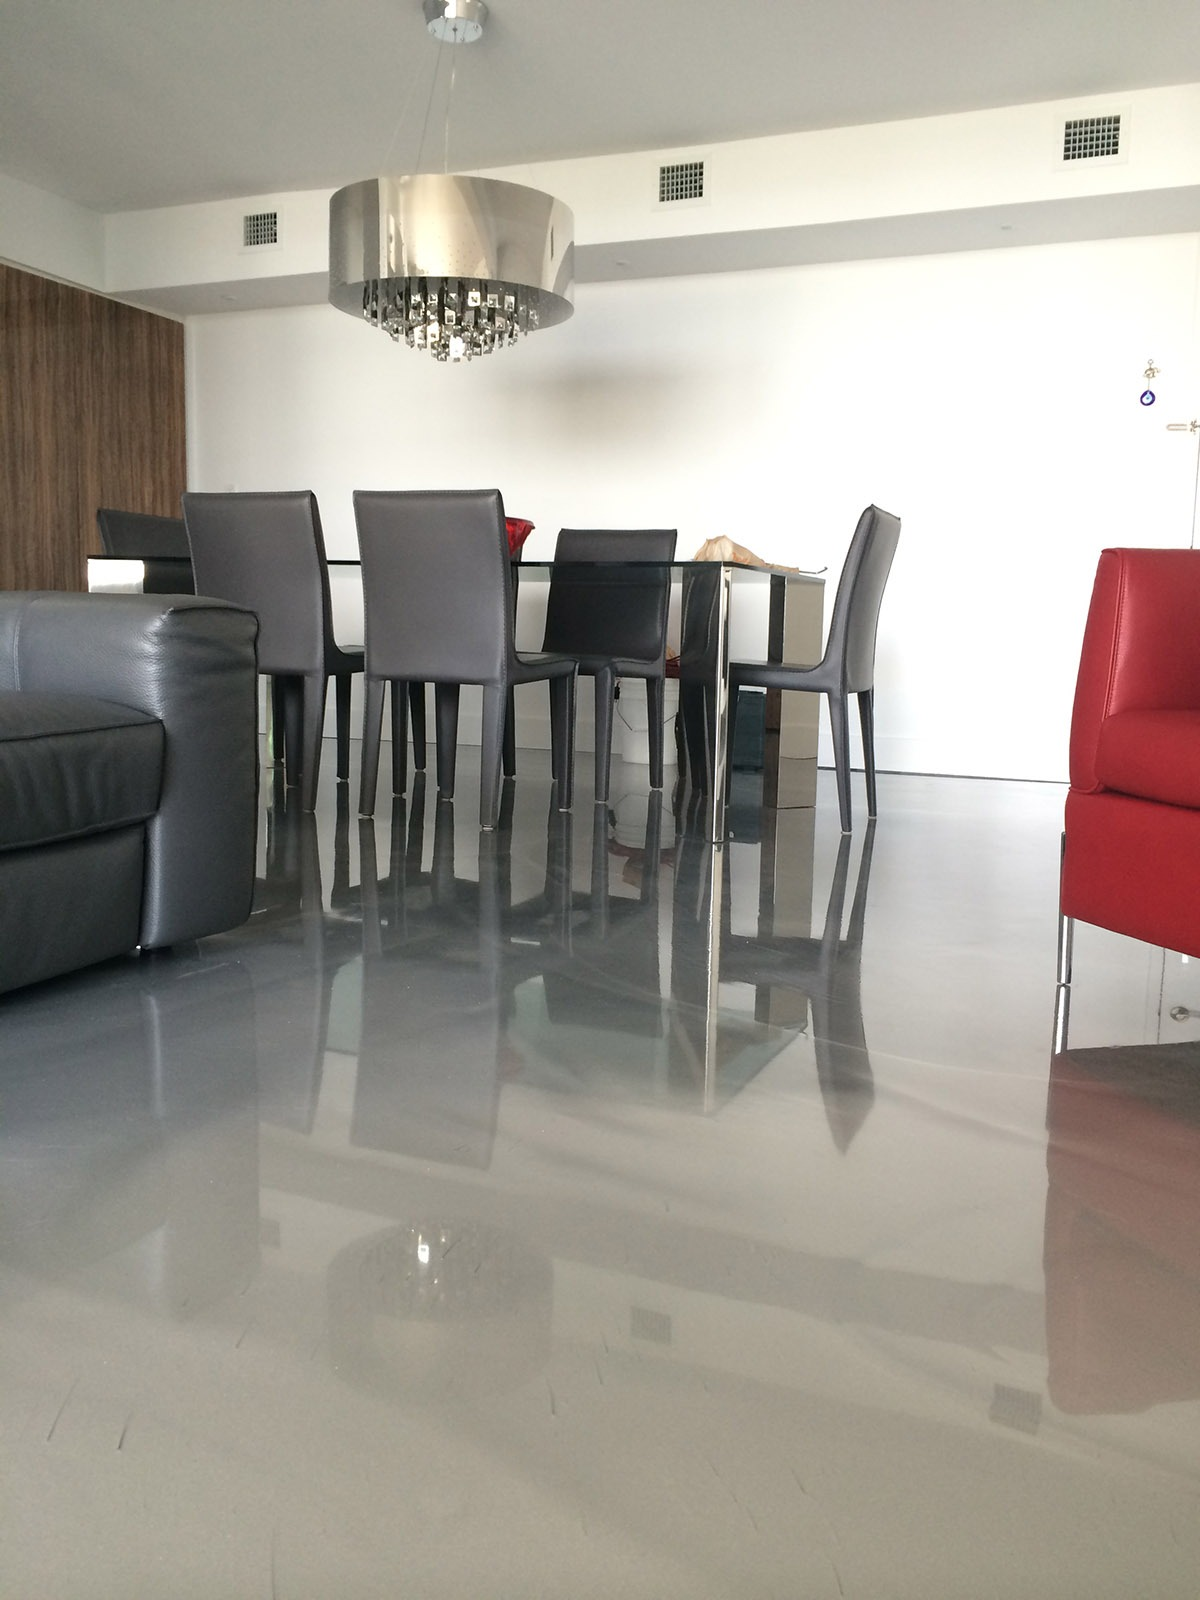 columbus floor metallic ohio flooring floors epoxy pcc